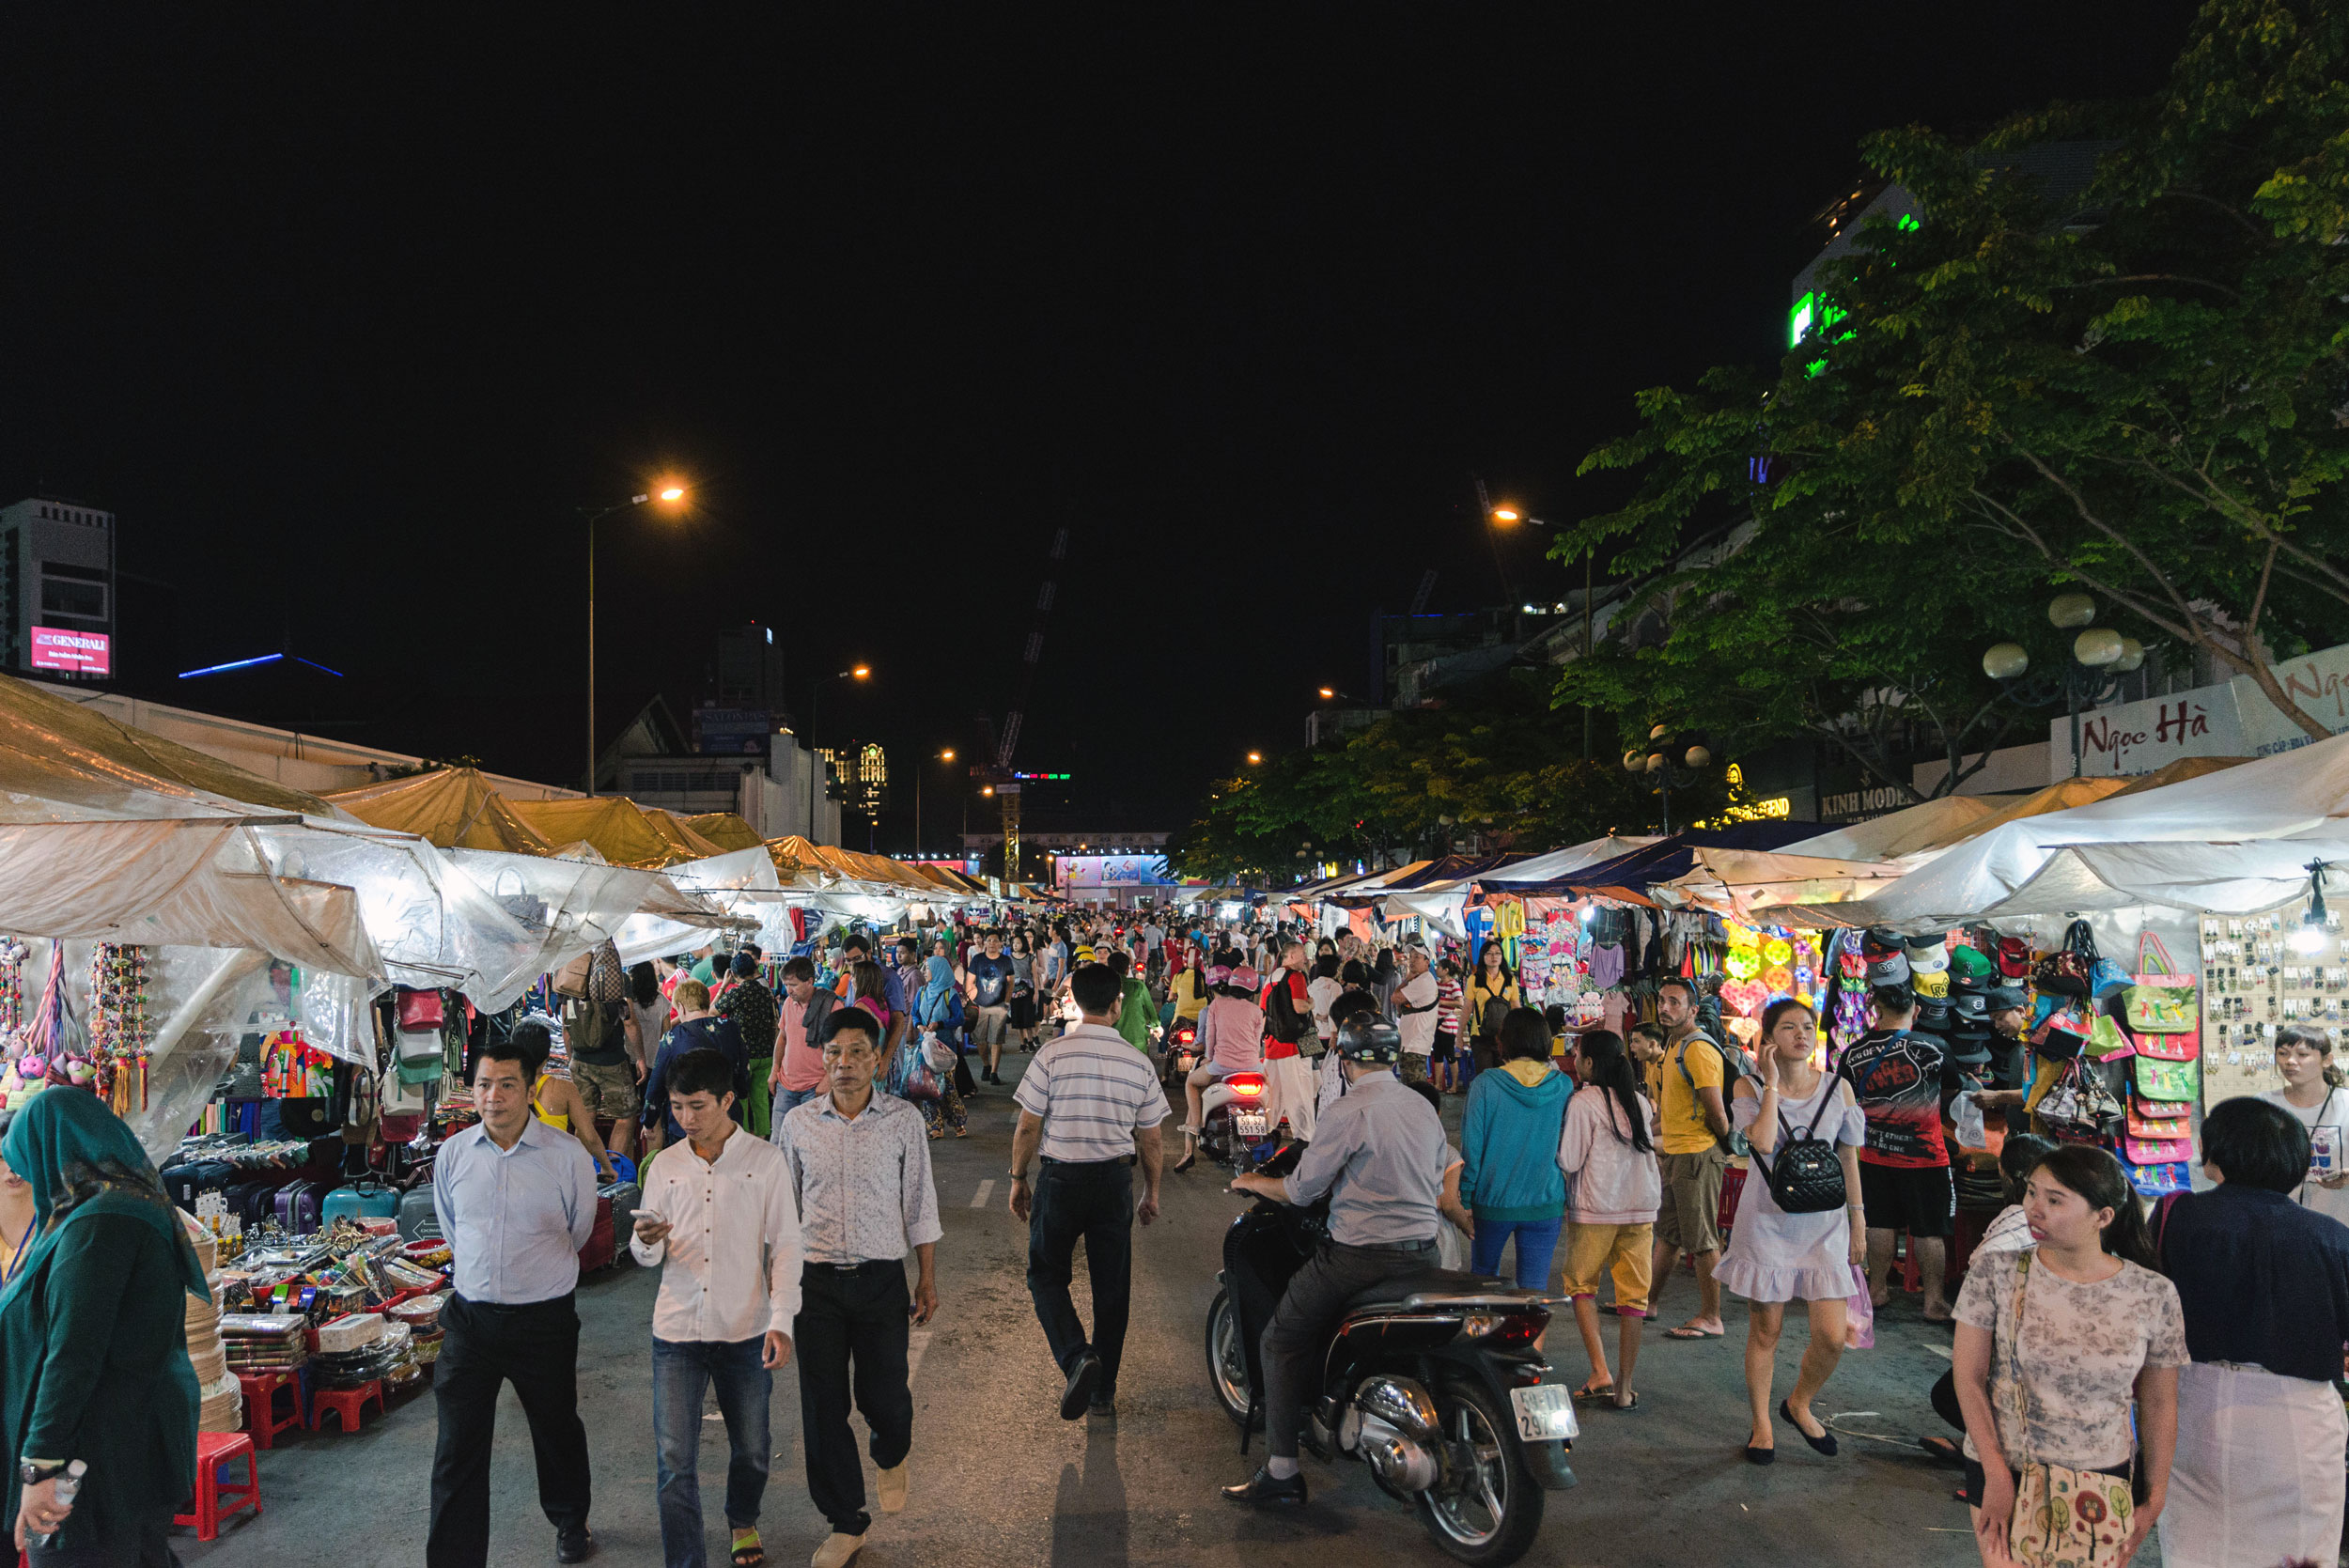 Ben Thanh night market in Ho Chi Minh